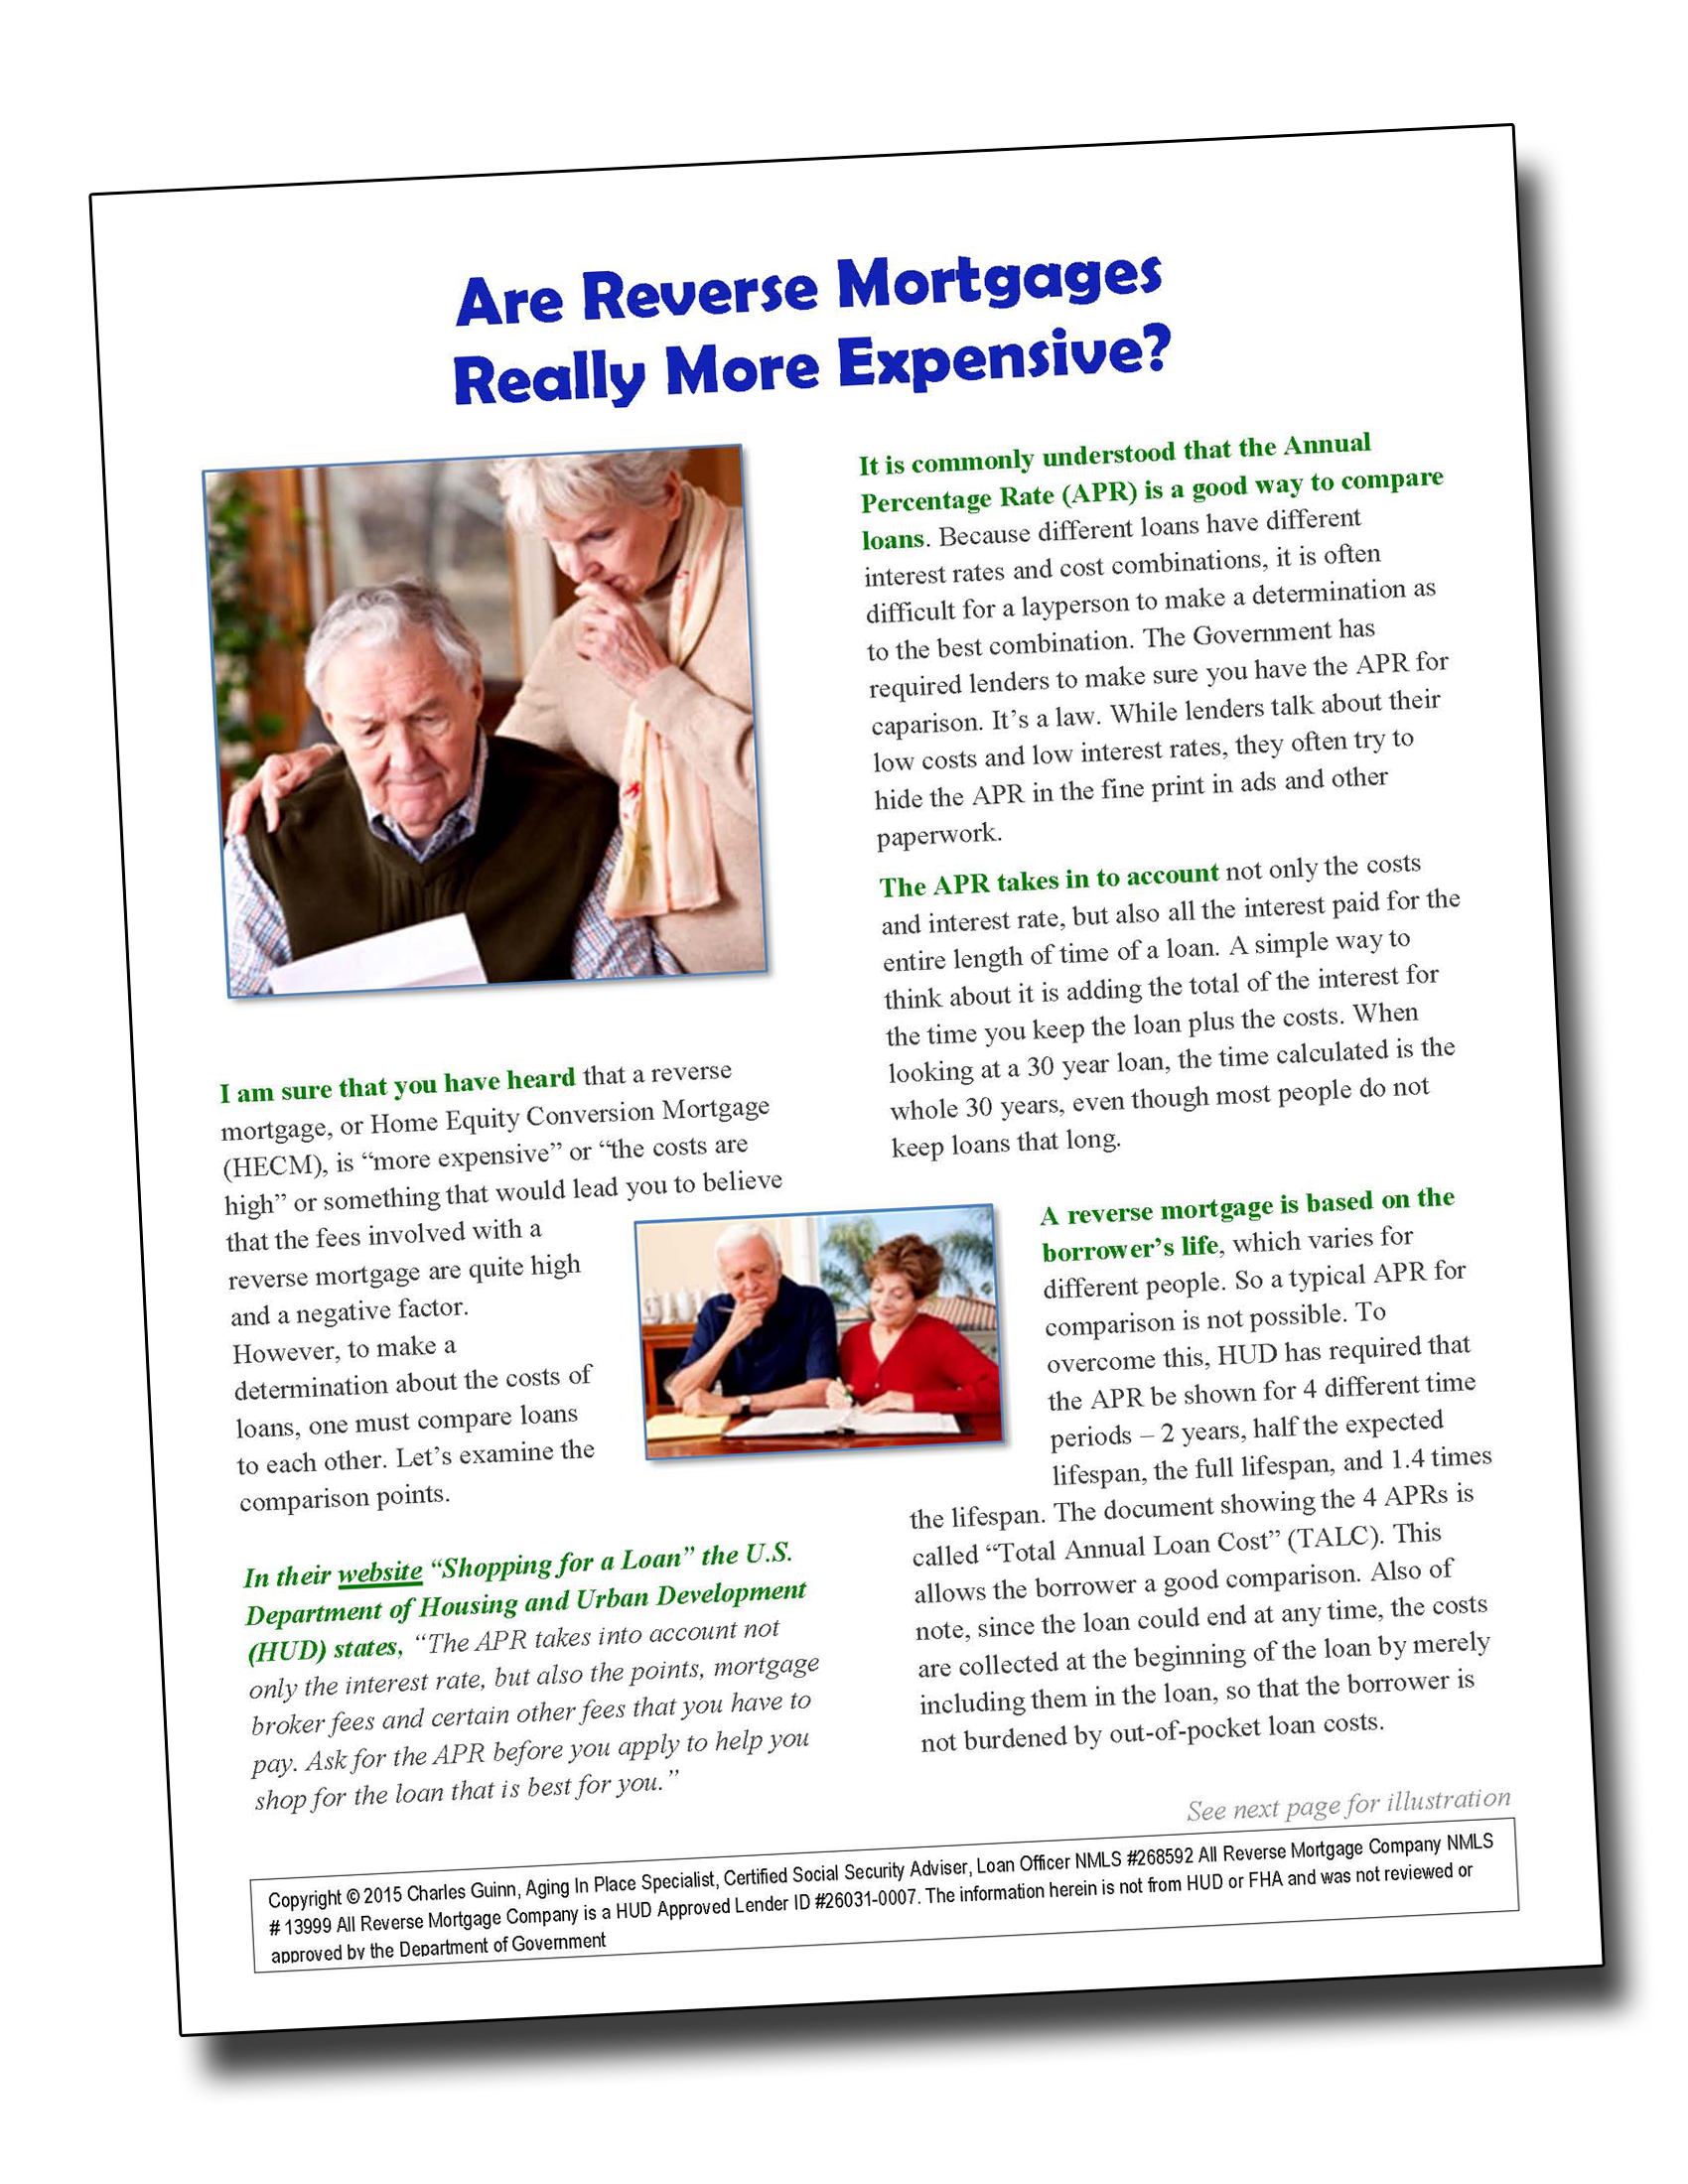 Pages from Are Reverse Mortgages Really More Expensive